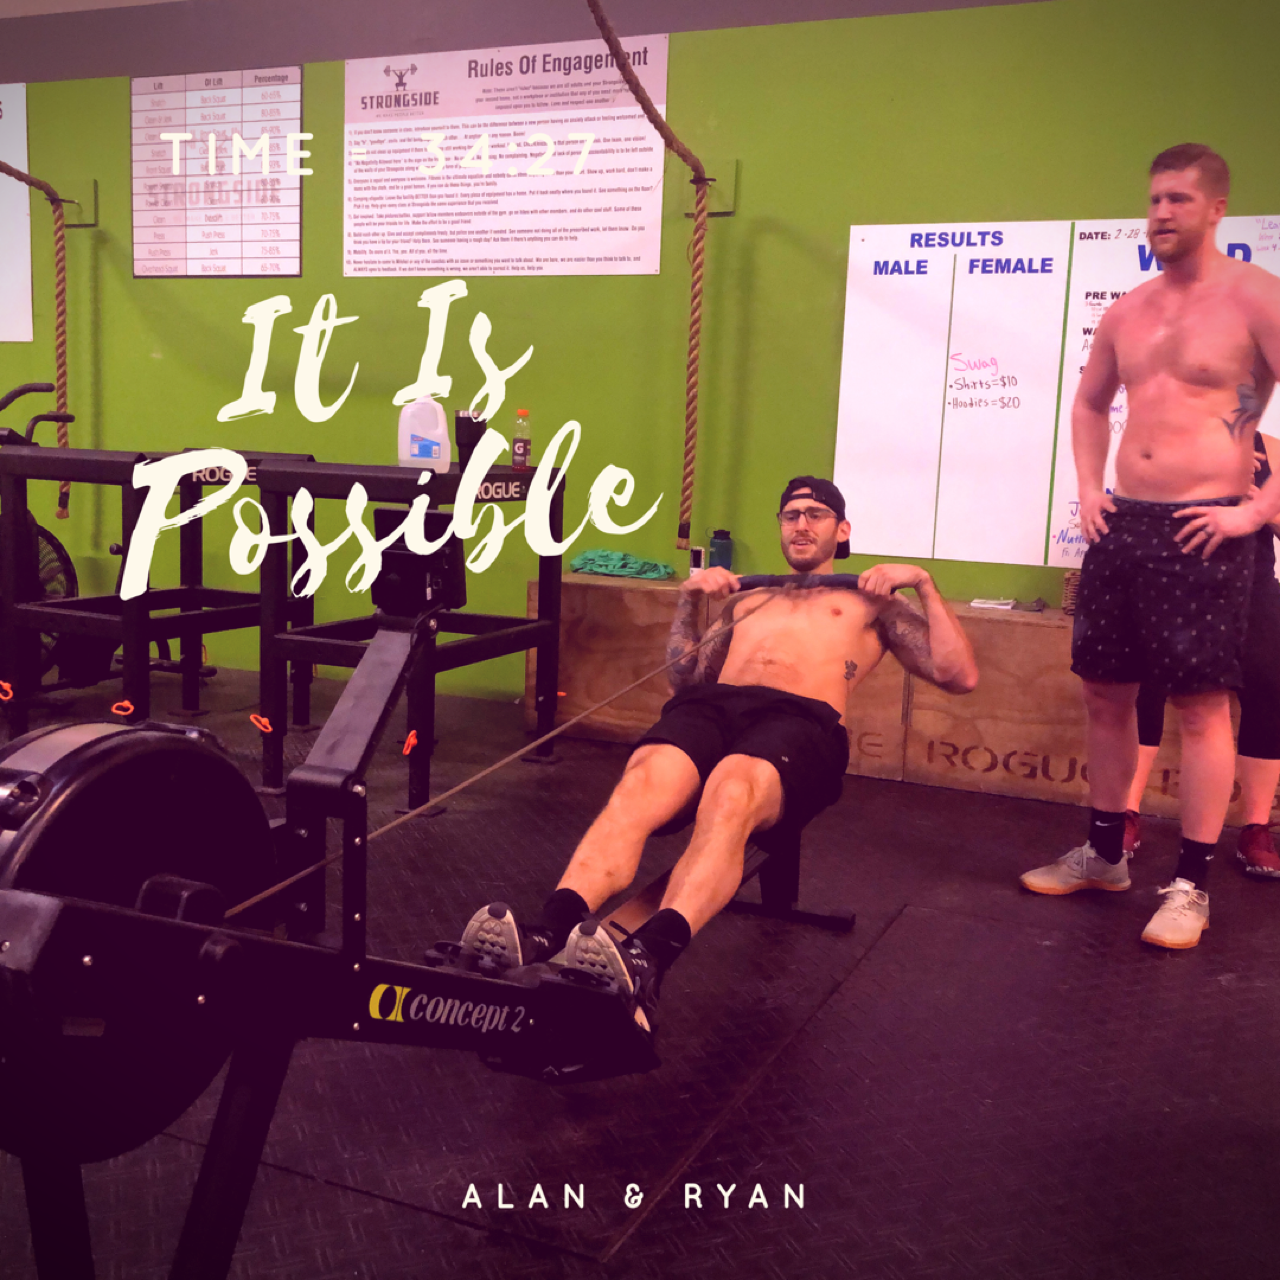 Conditioning Program – March 4th to 9th 2019